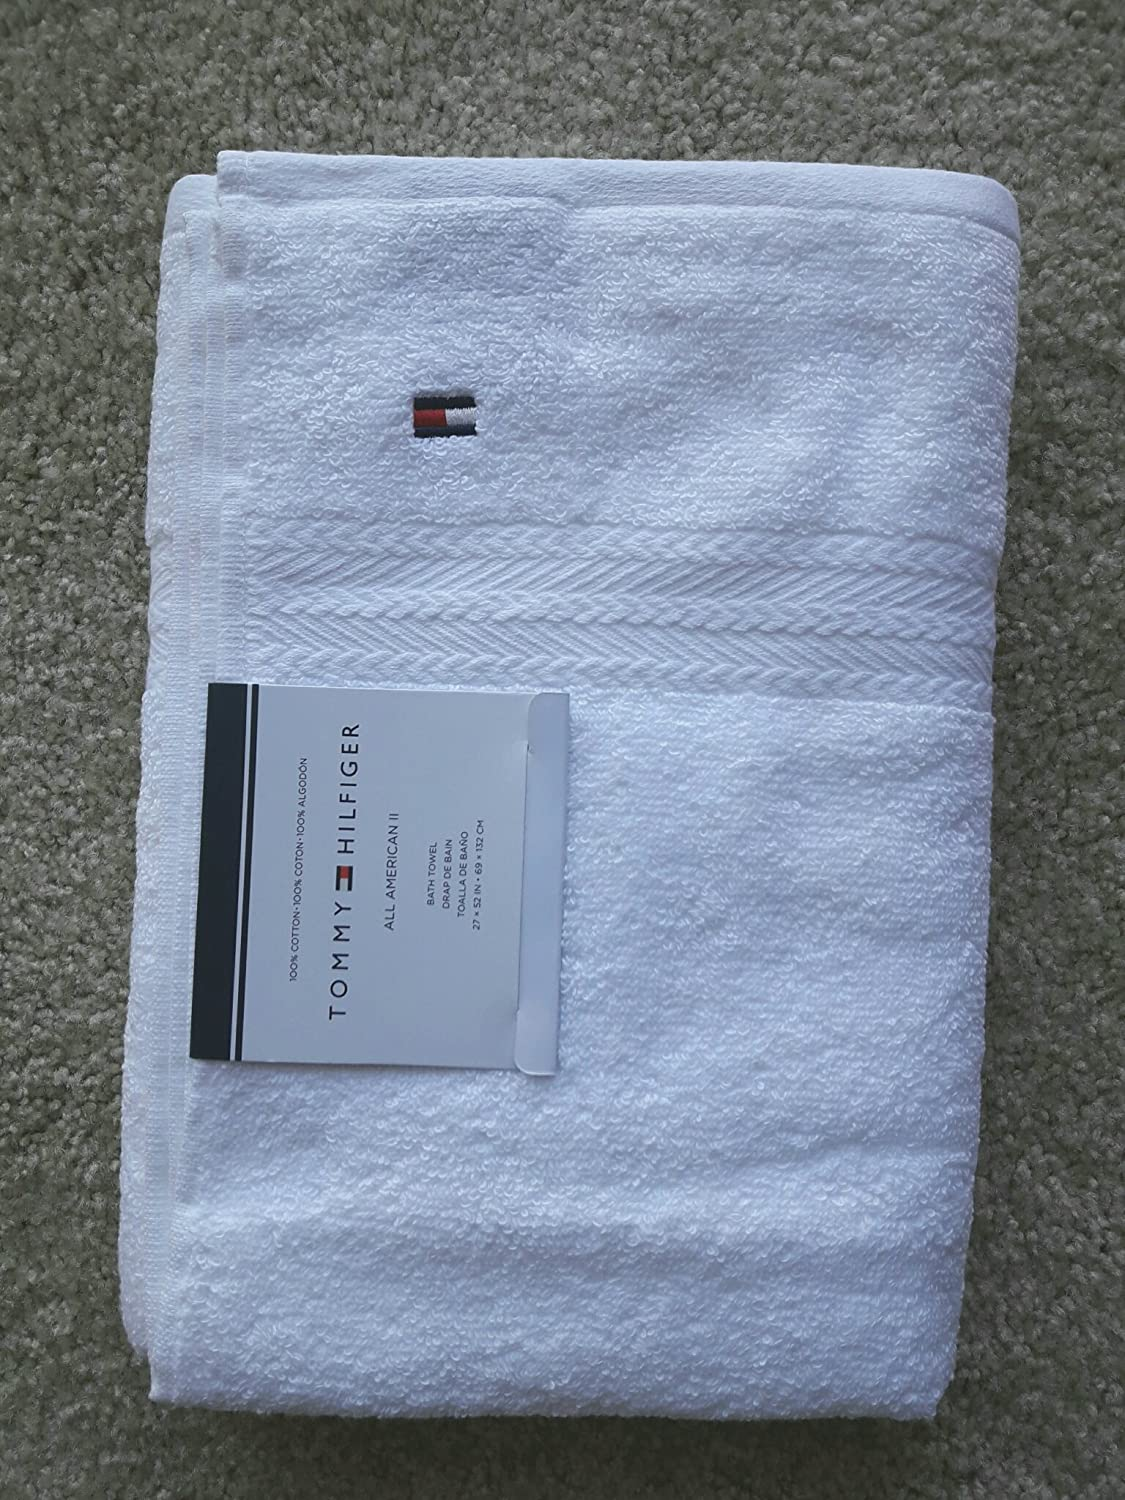 Amazon.com: Tommy Hilfiger All American II Bath Towel 27